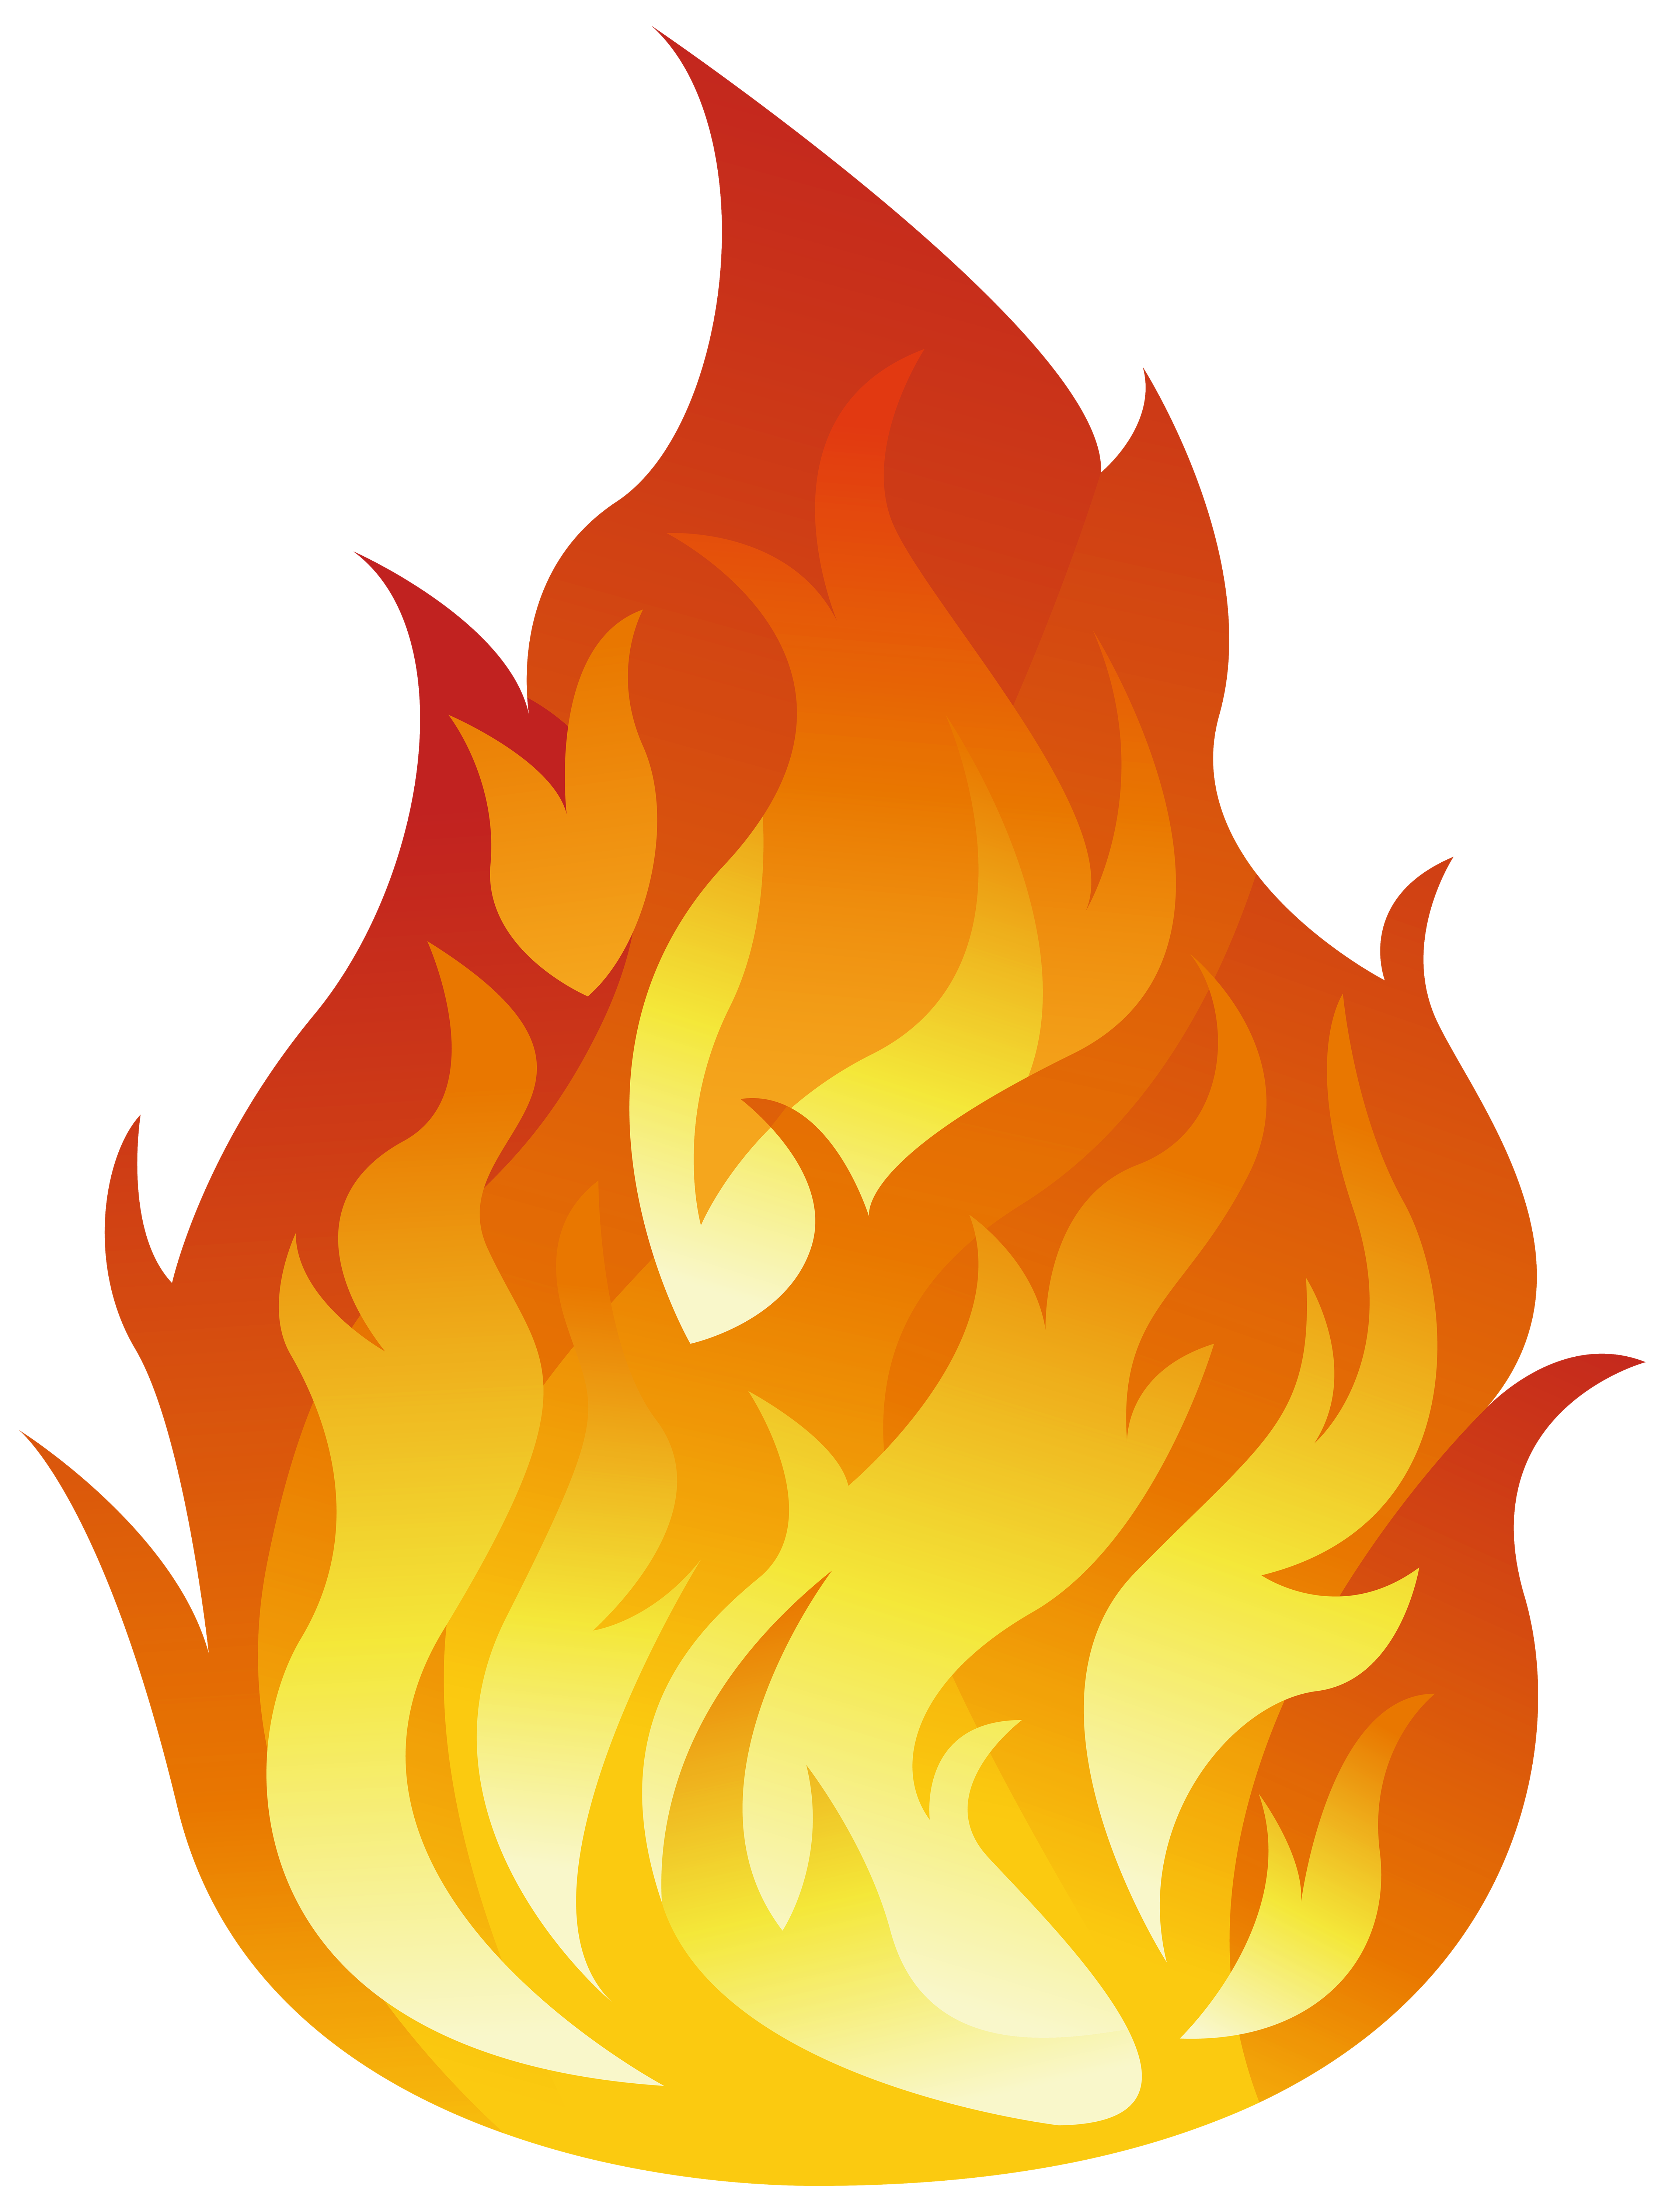 Flame Png - ClipArt Best